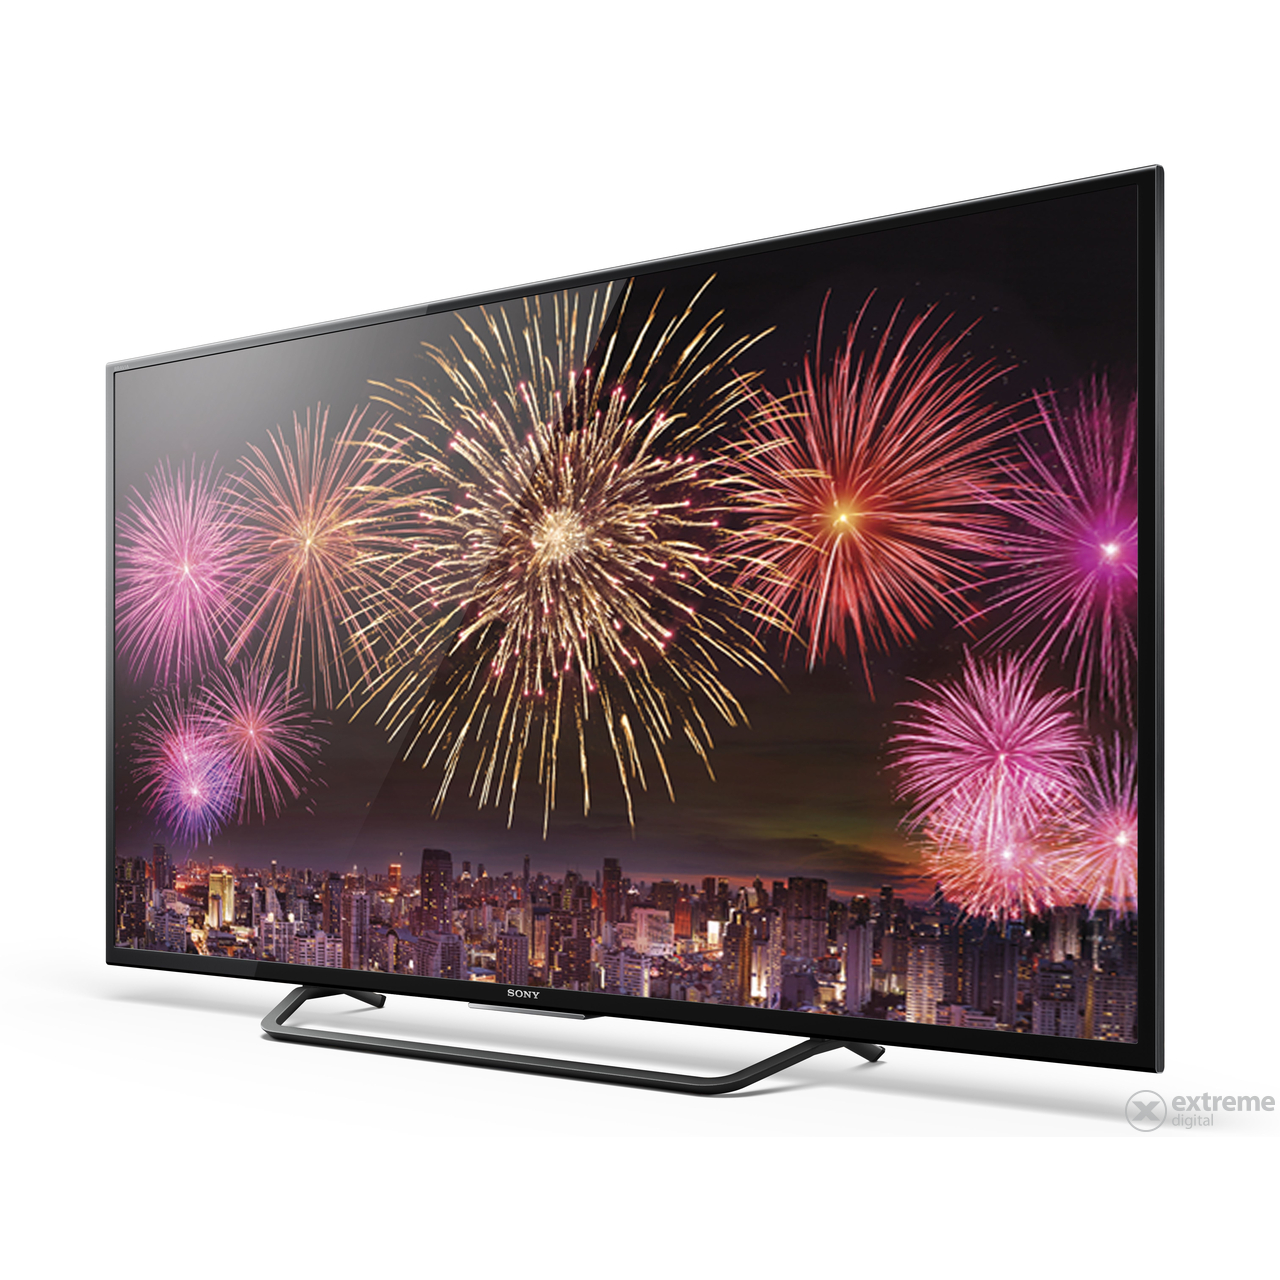 sony-kd55x8005cbaep-uhd-android-smart-led-televizio_1d459f27.jpg